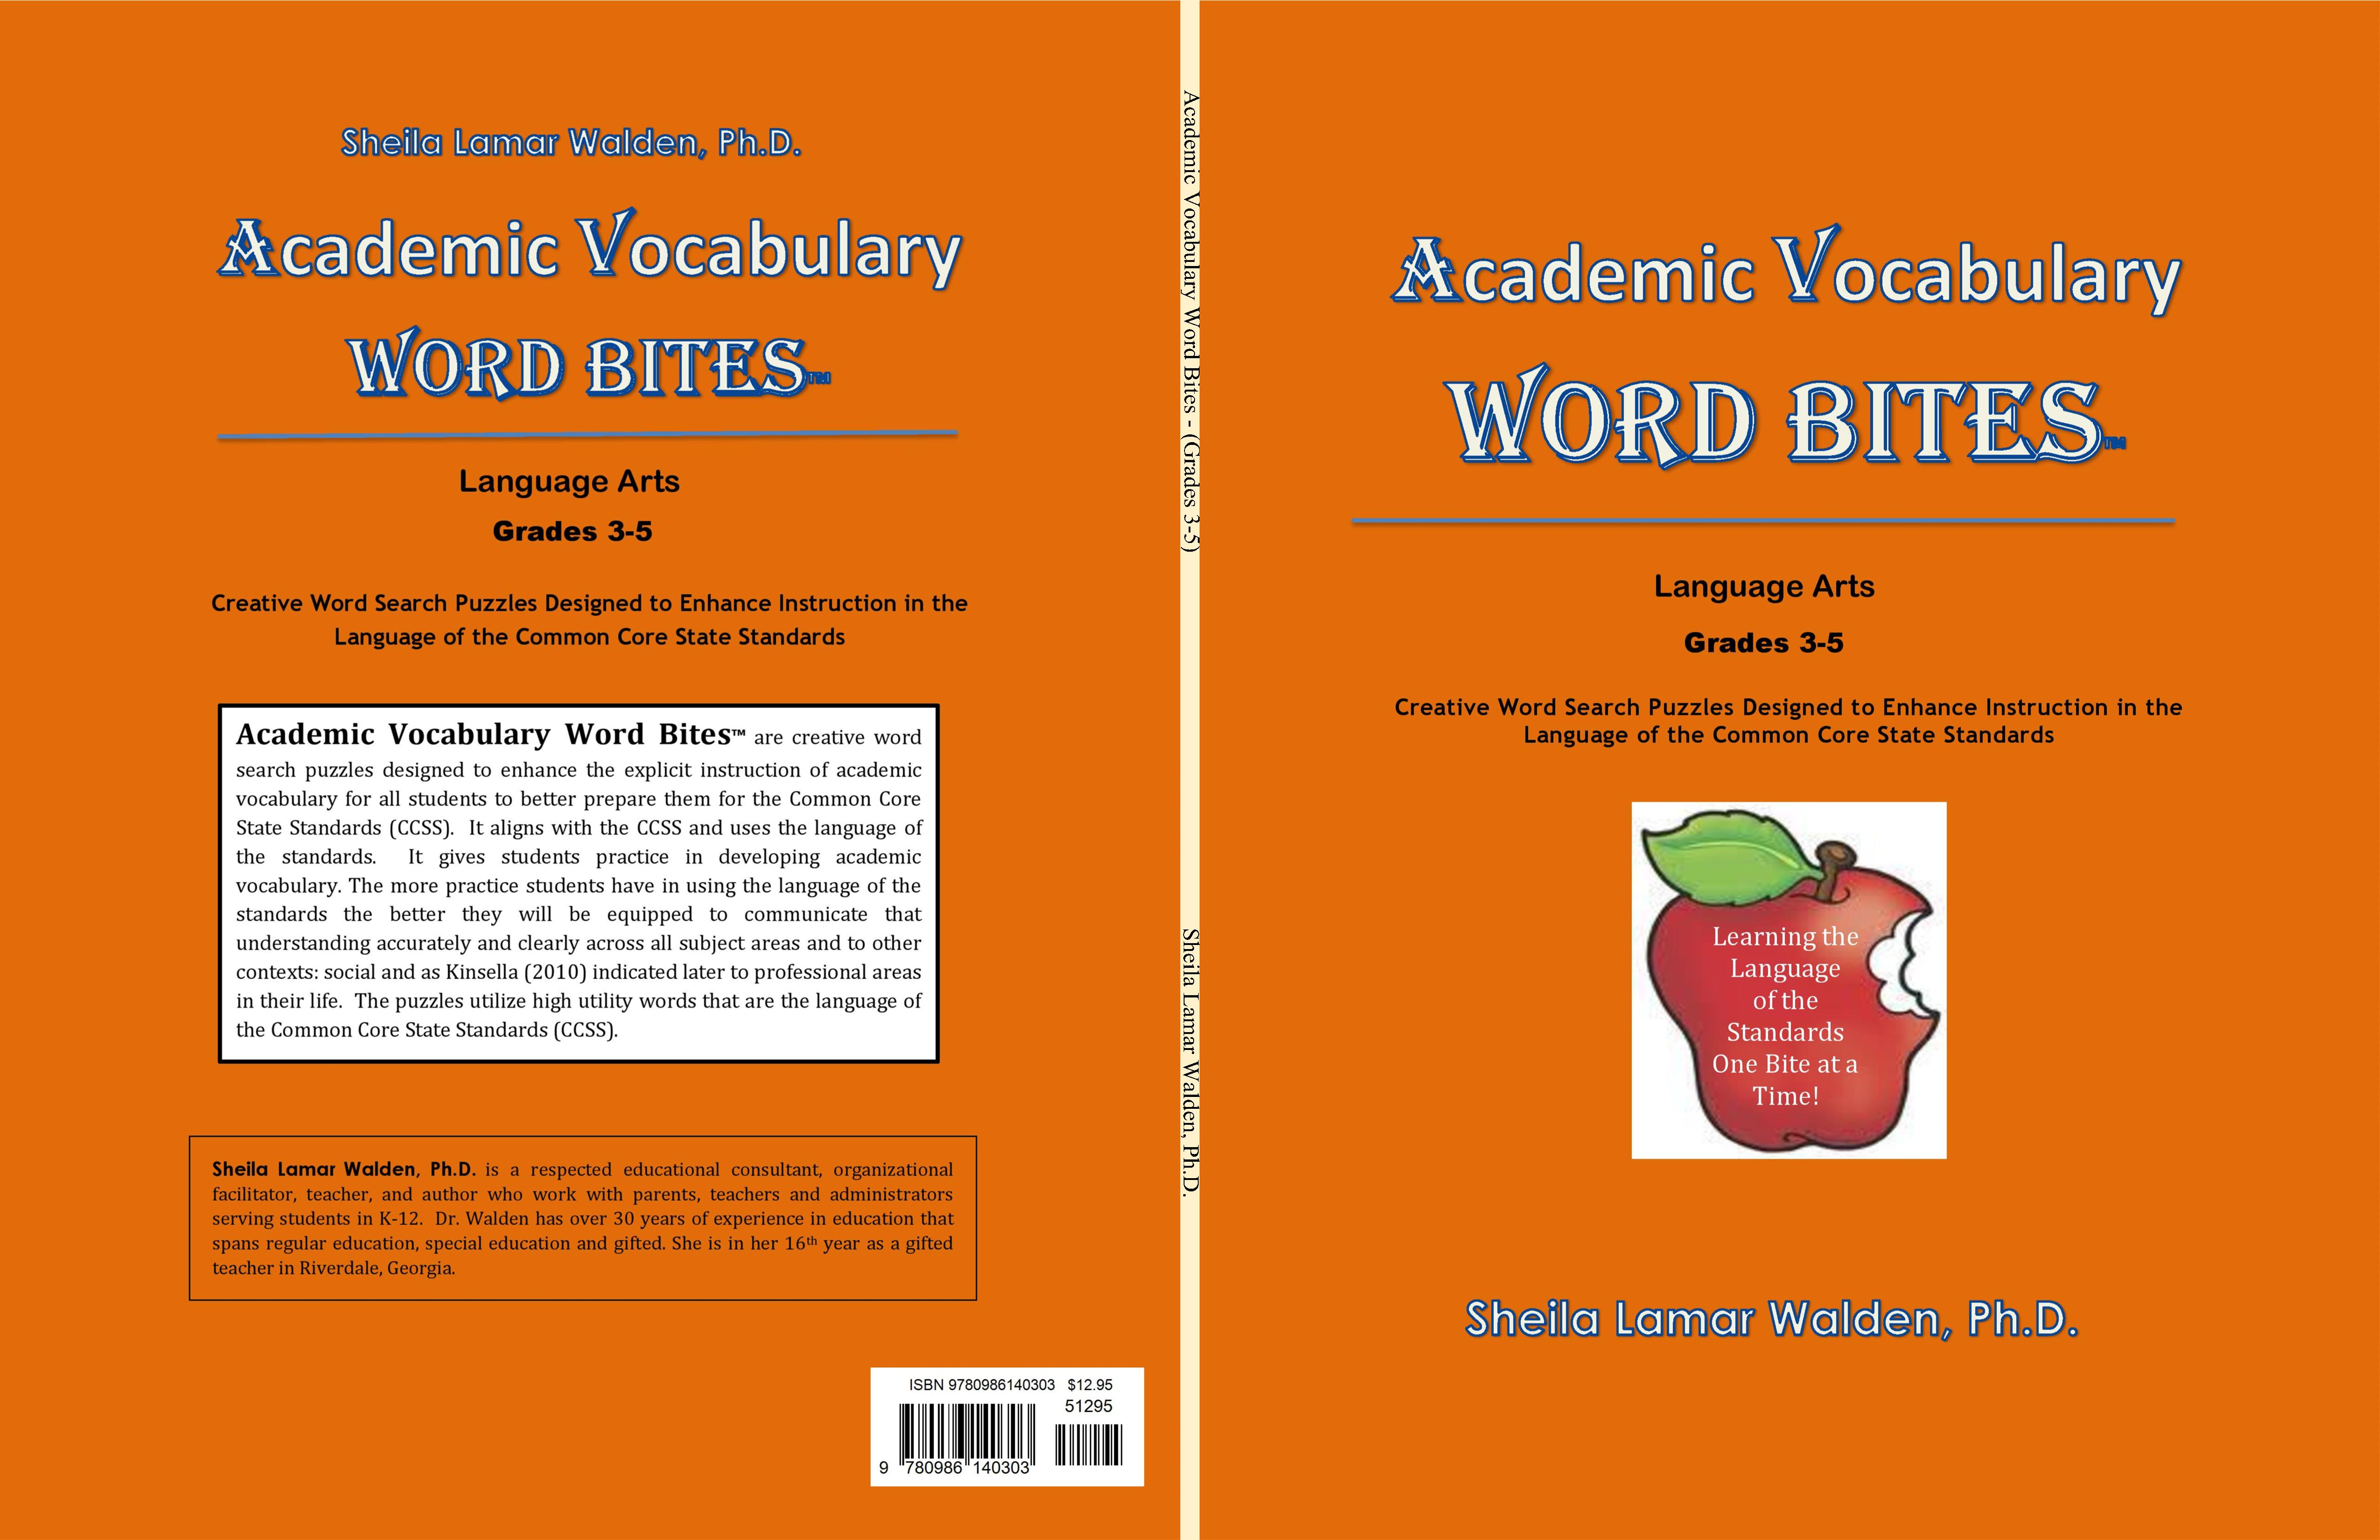 Academic Vocabulary Word Bites cover image